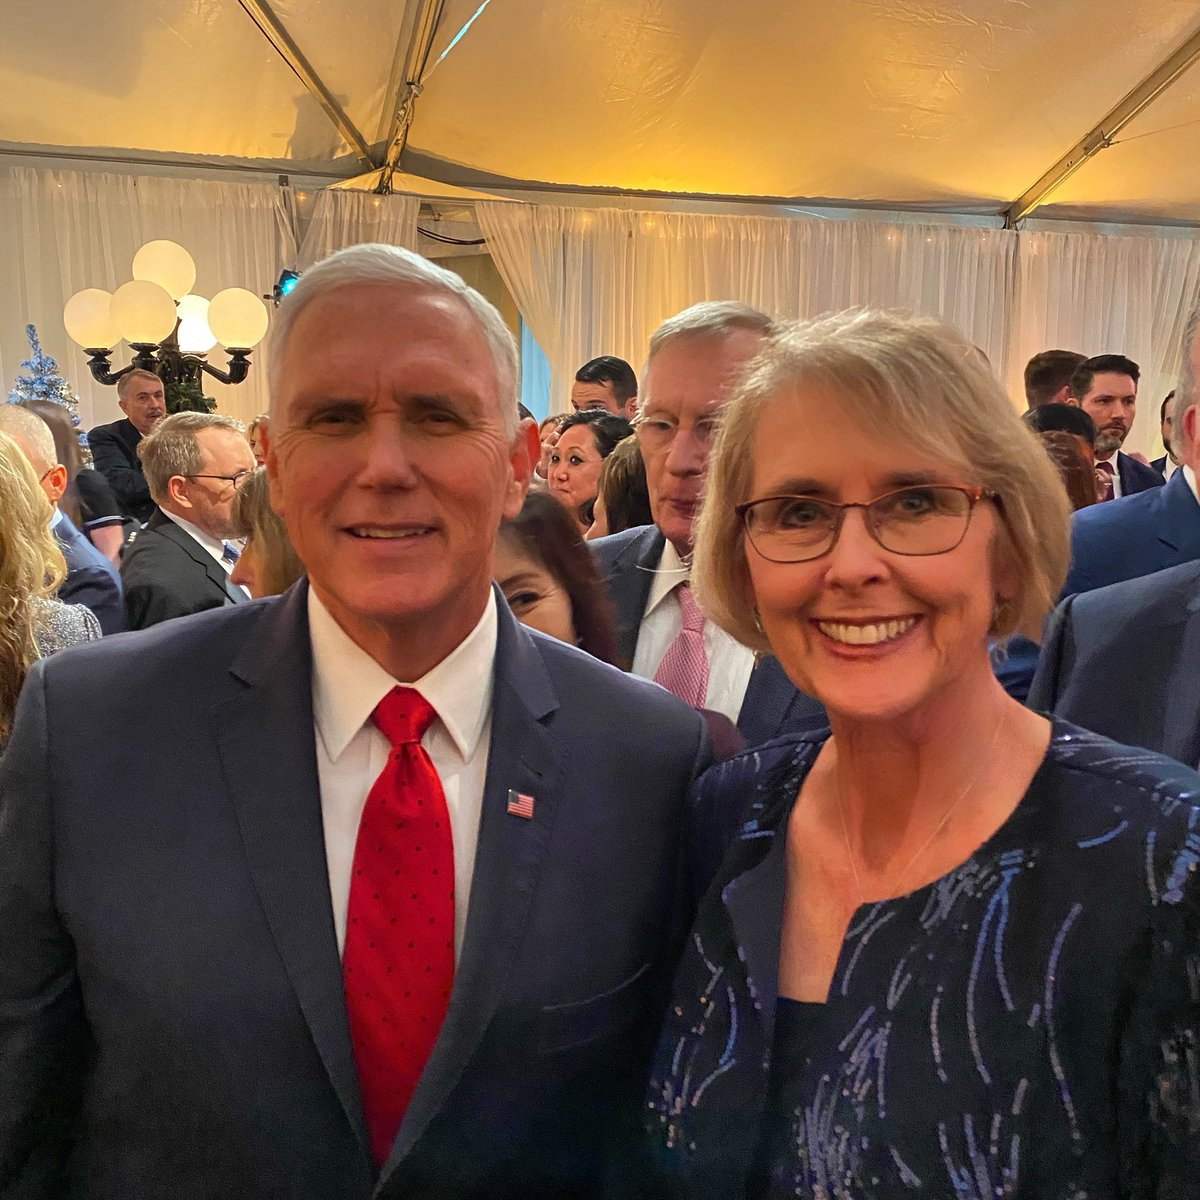 MRP Chair @kayhoflander  with Vice President @Mike_Pence  at the VP's Christmas Party.